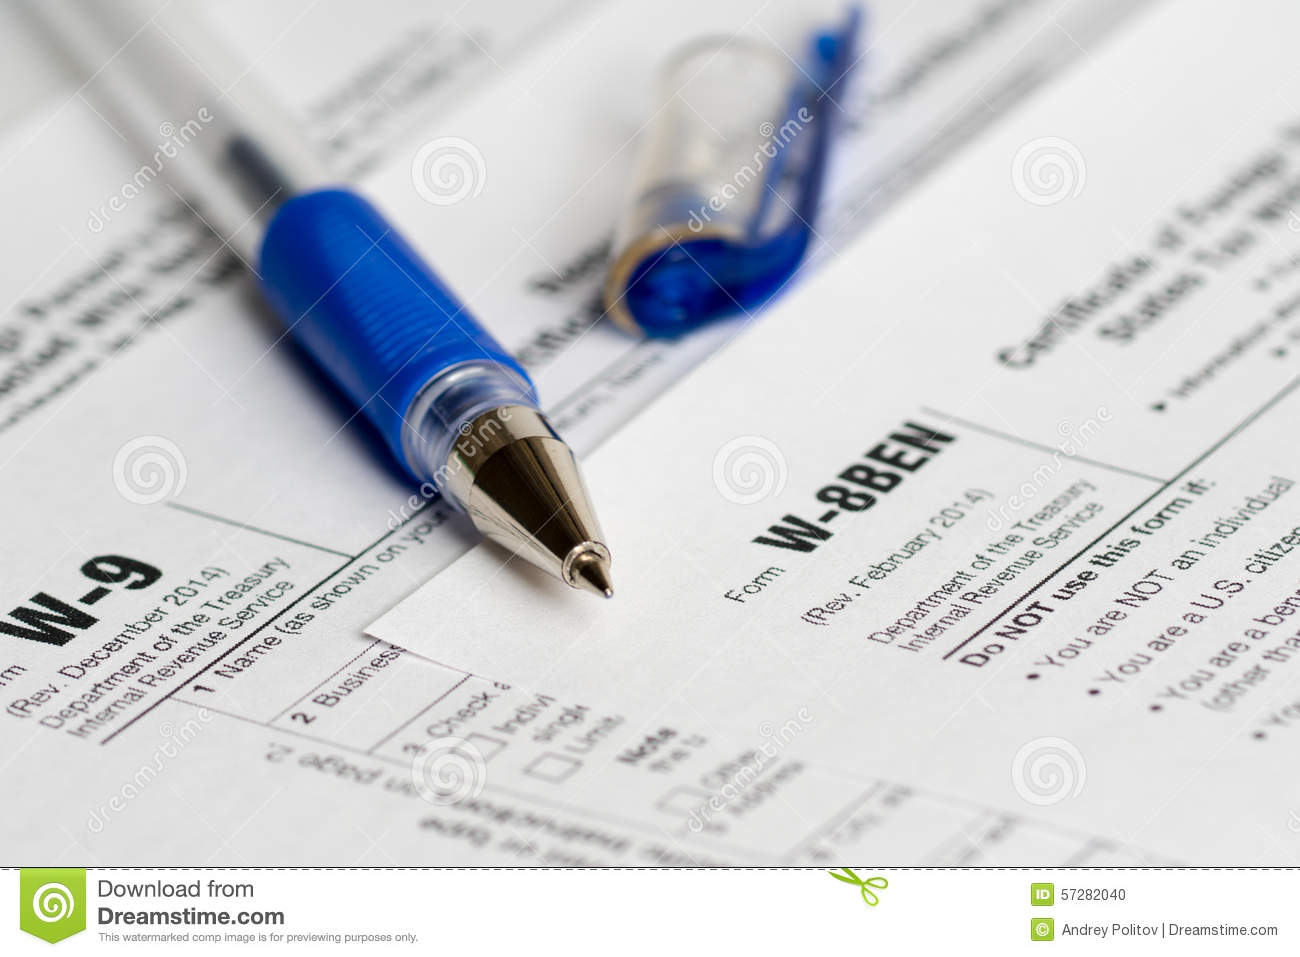 Tax reporting forms with opened blue pen